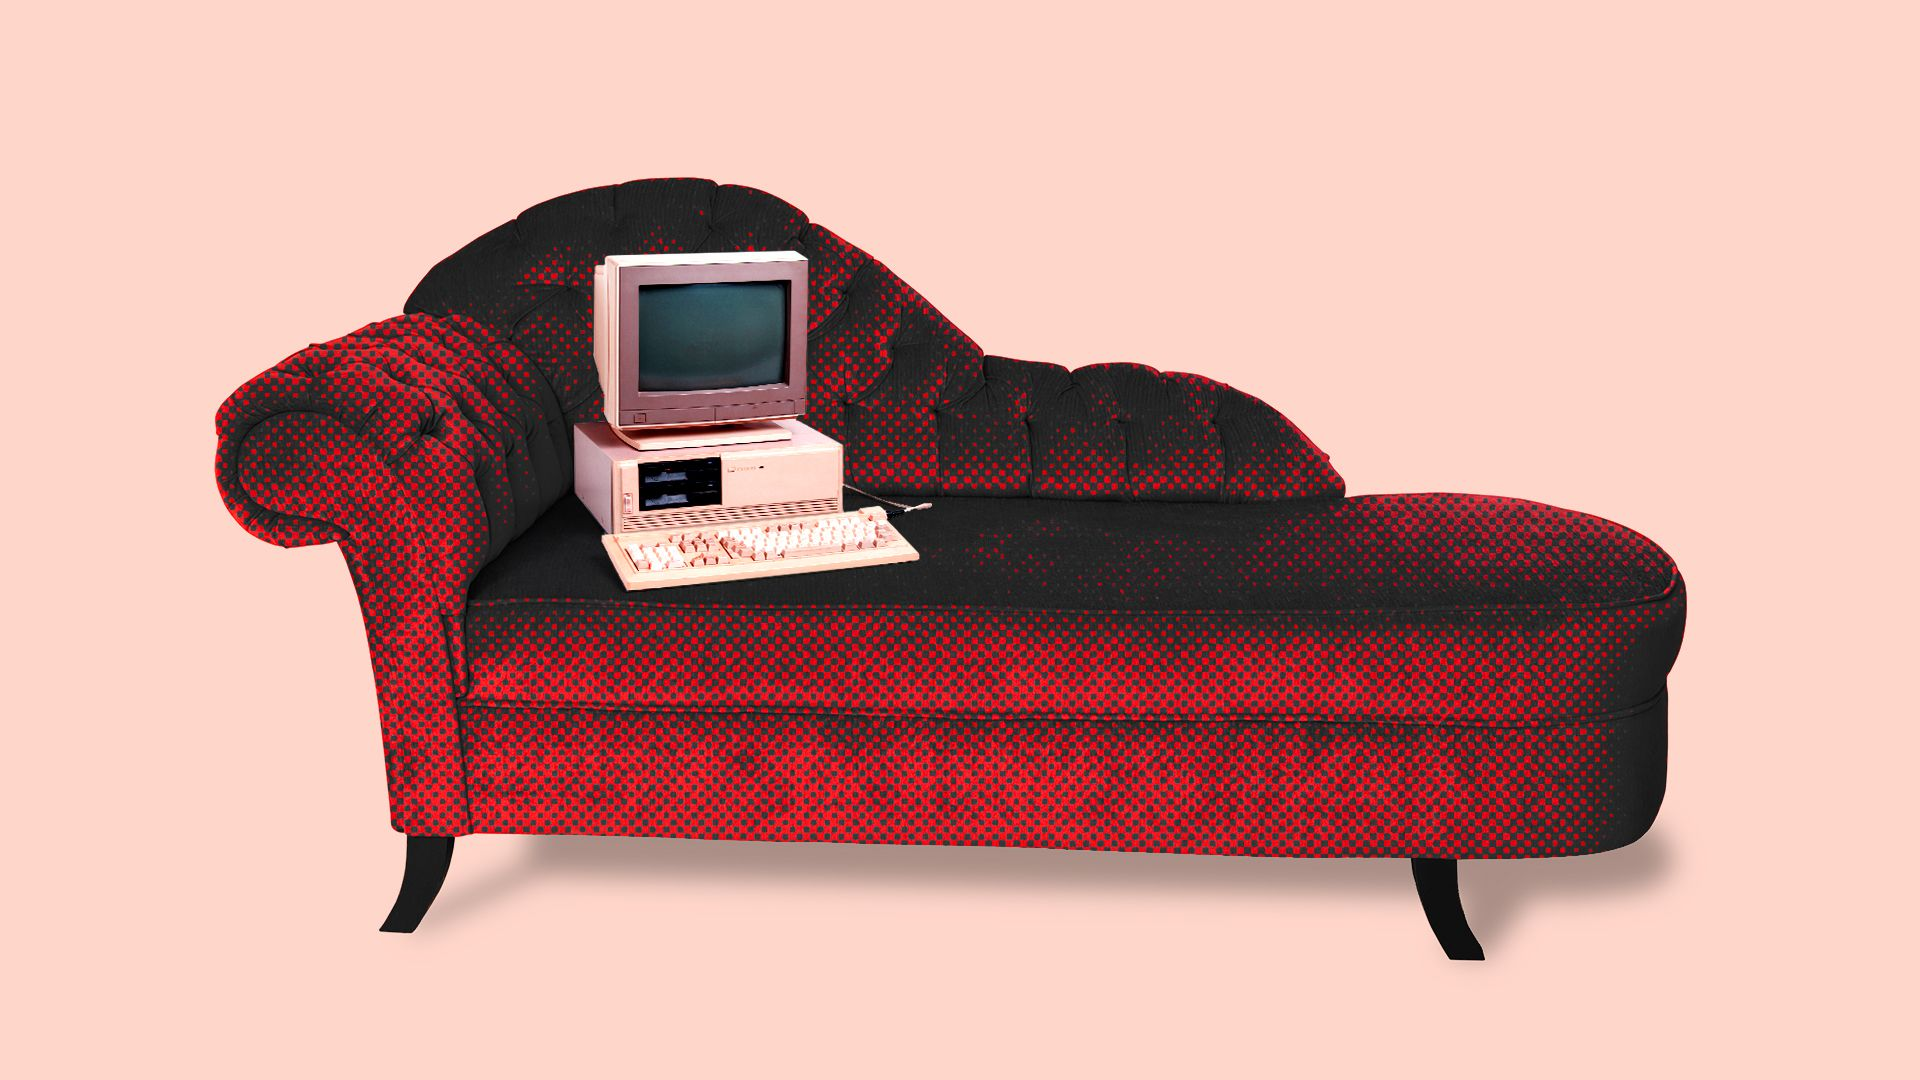 Illustration of a computer on a couch